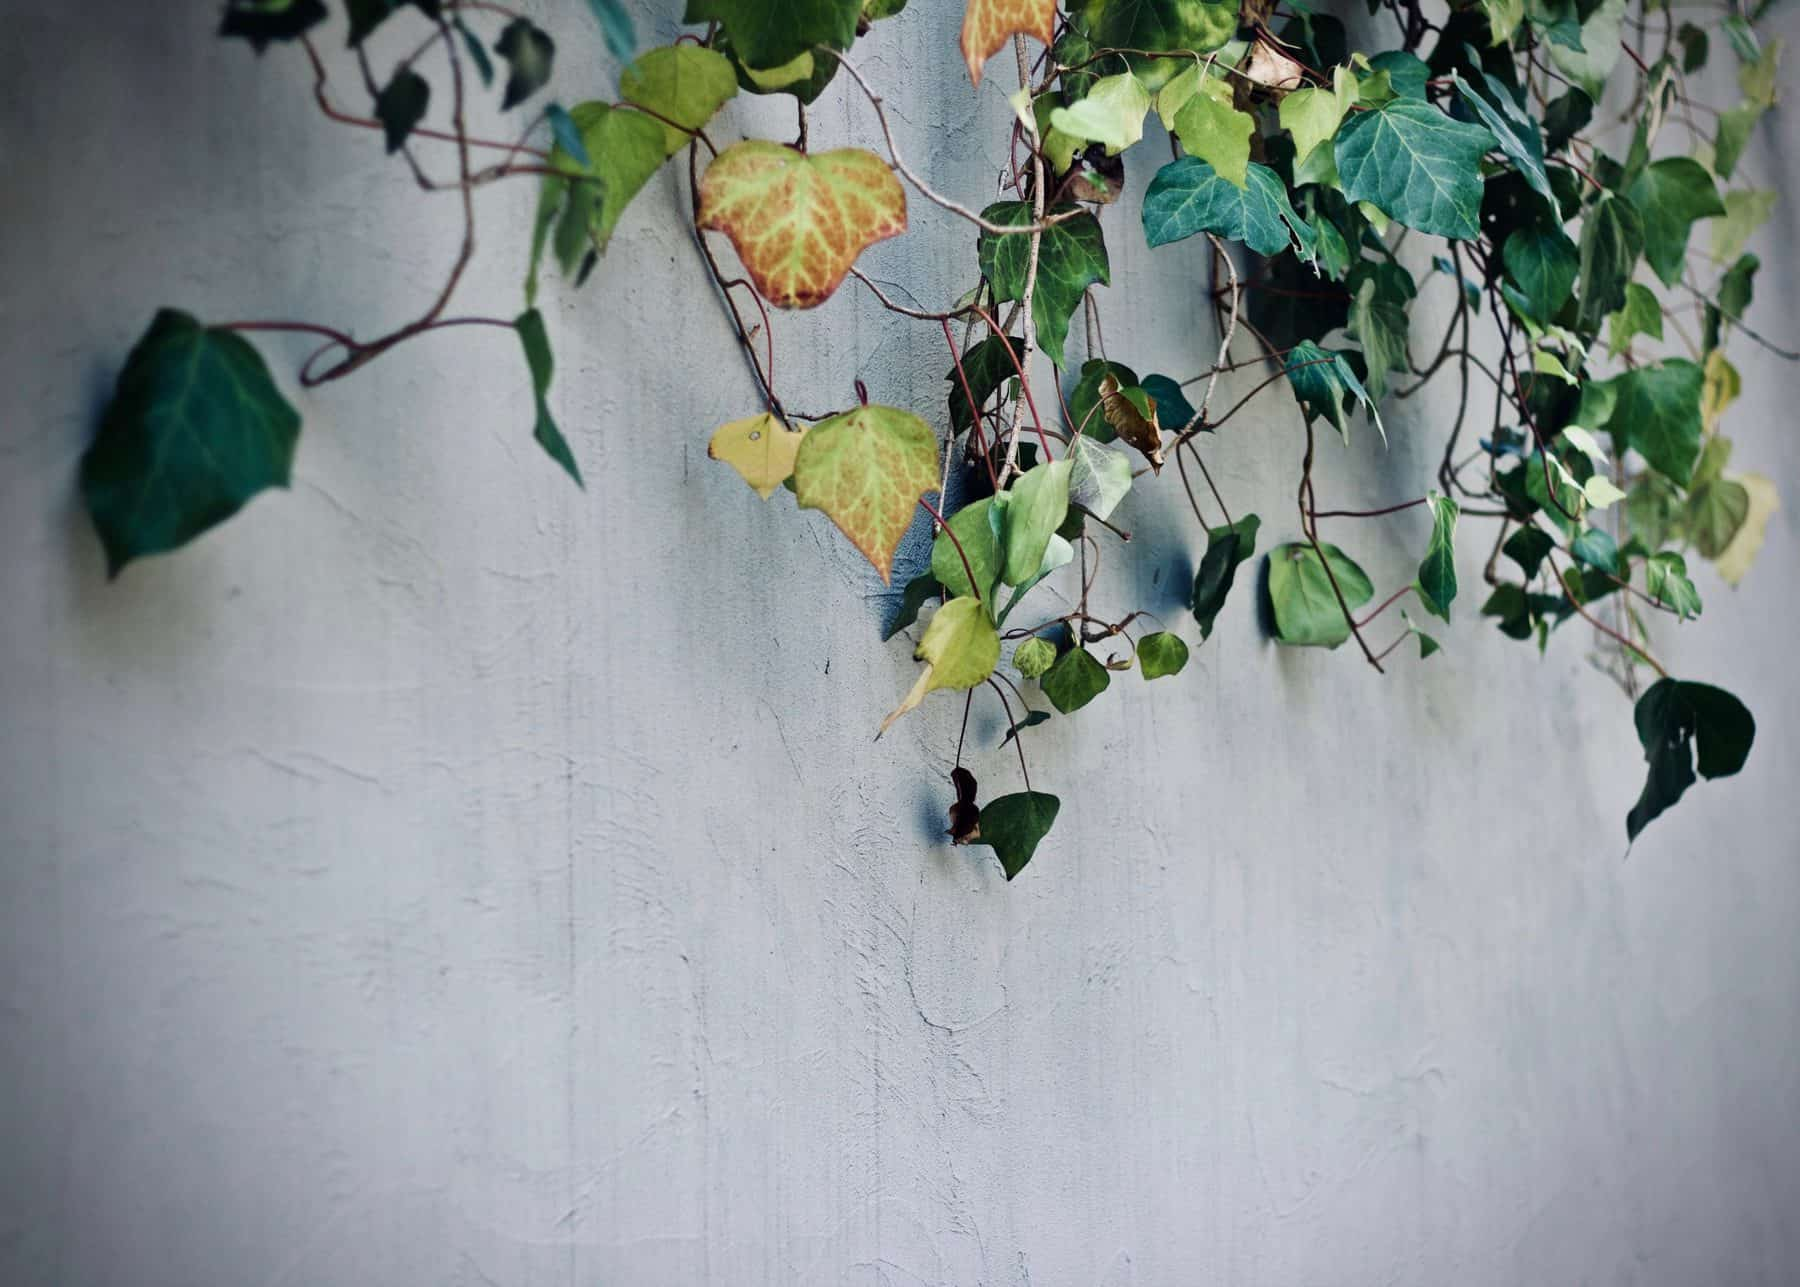 7 Climbing Plants That Could Transform The Look of Your Garden Cabin